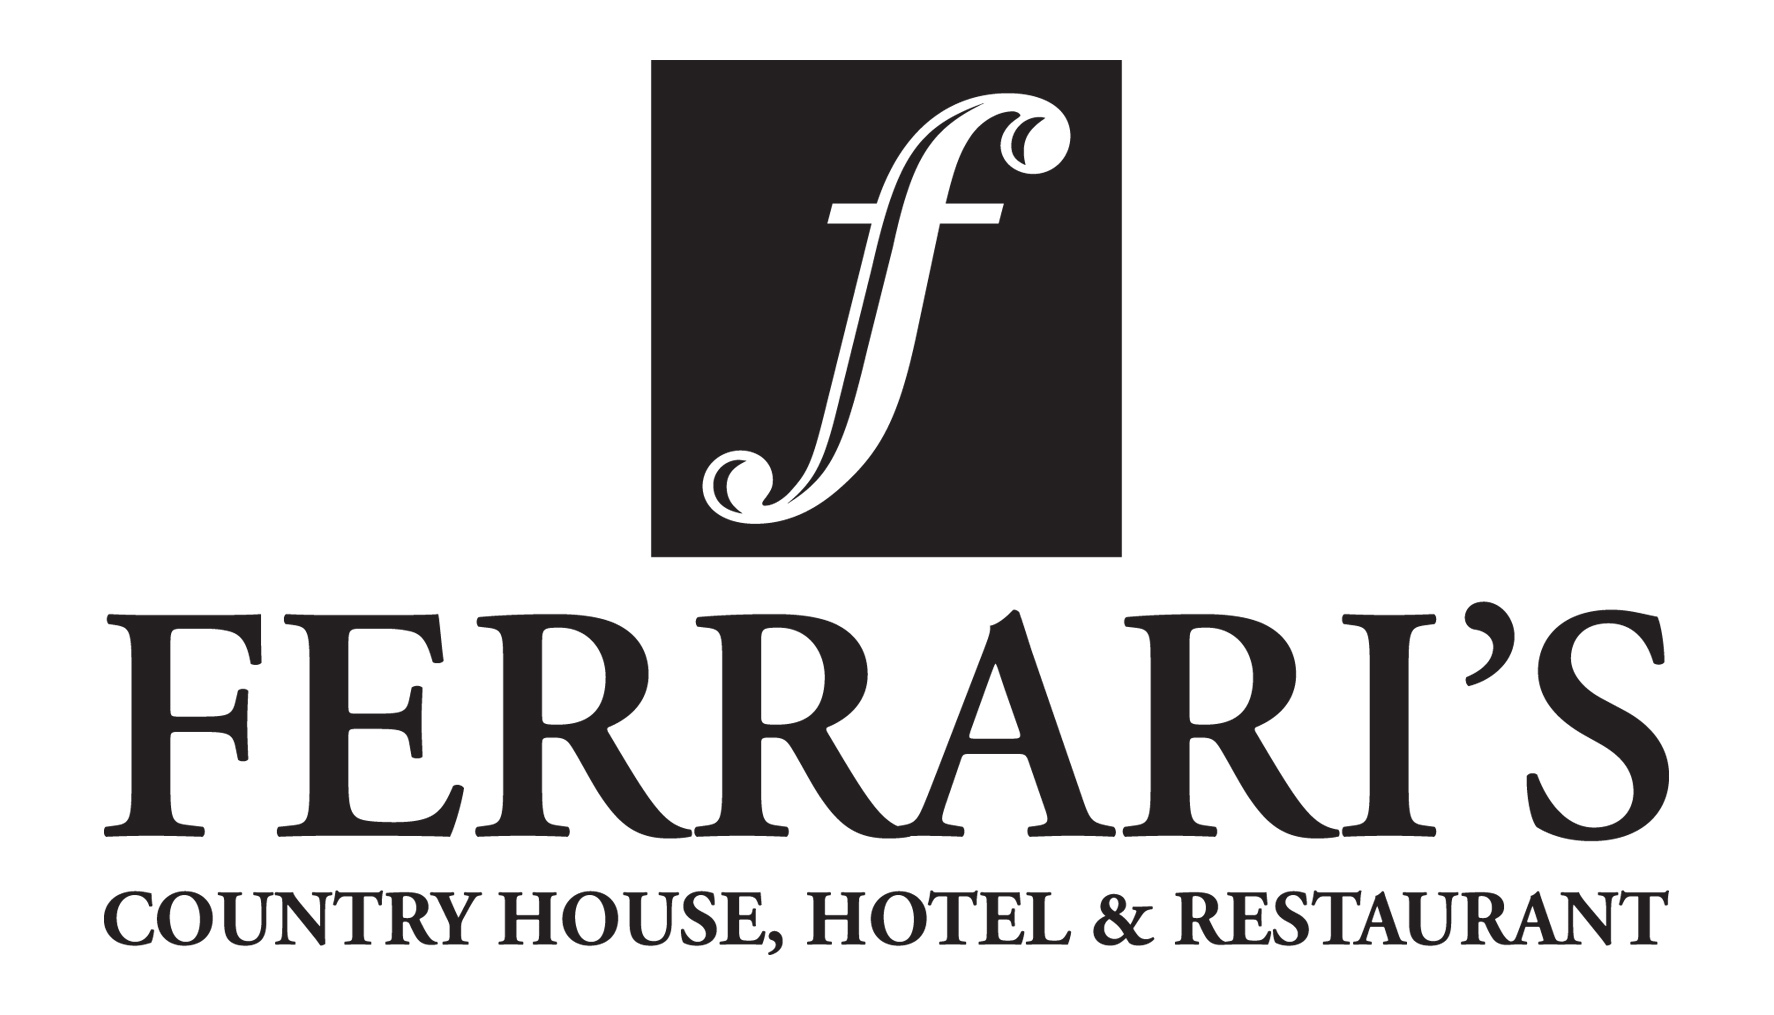 Ferrari's Country House, Hotel & Restaurant